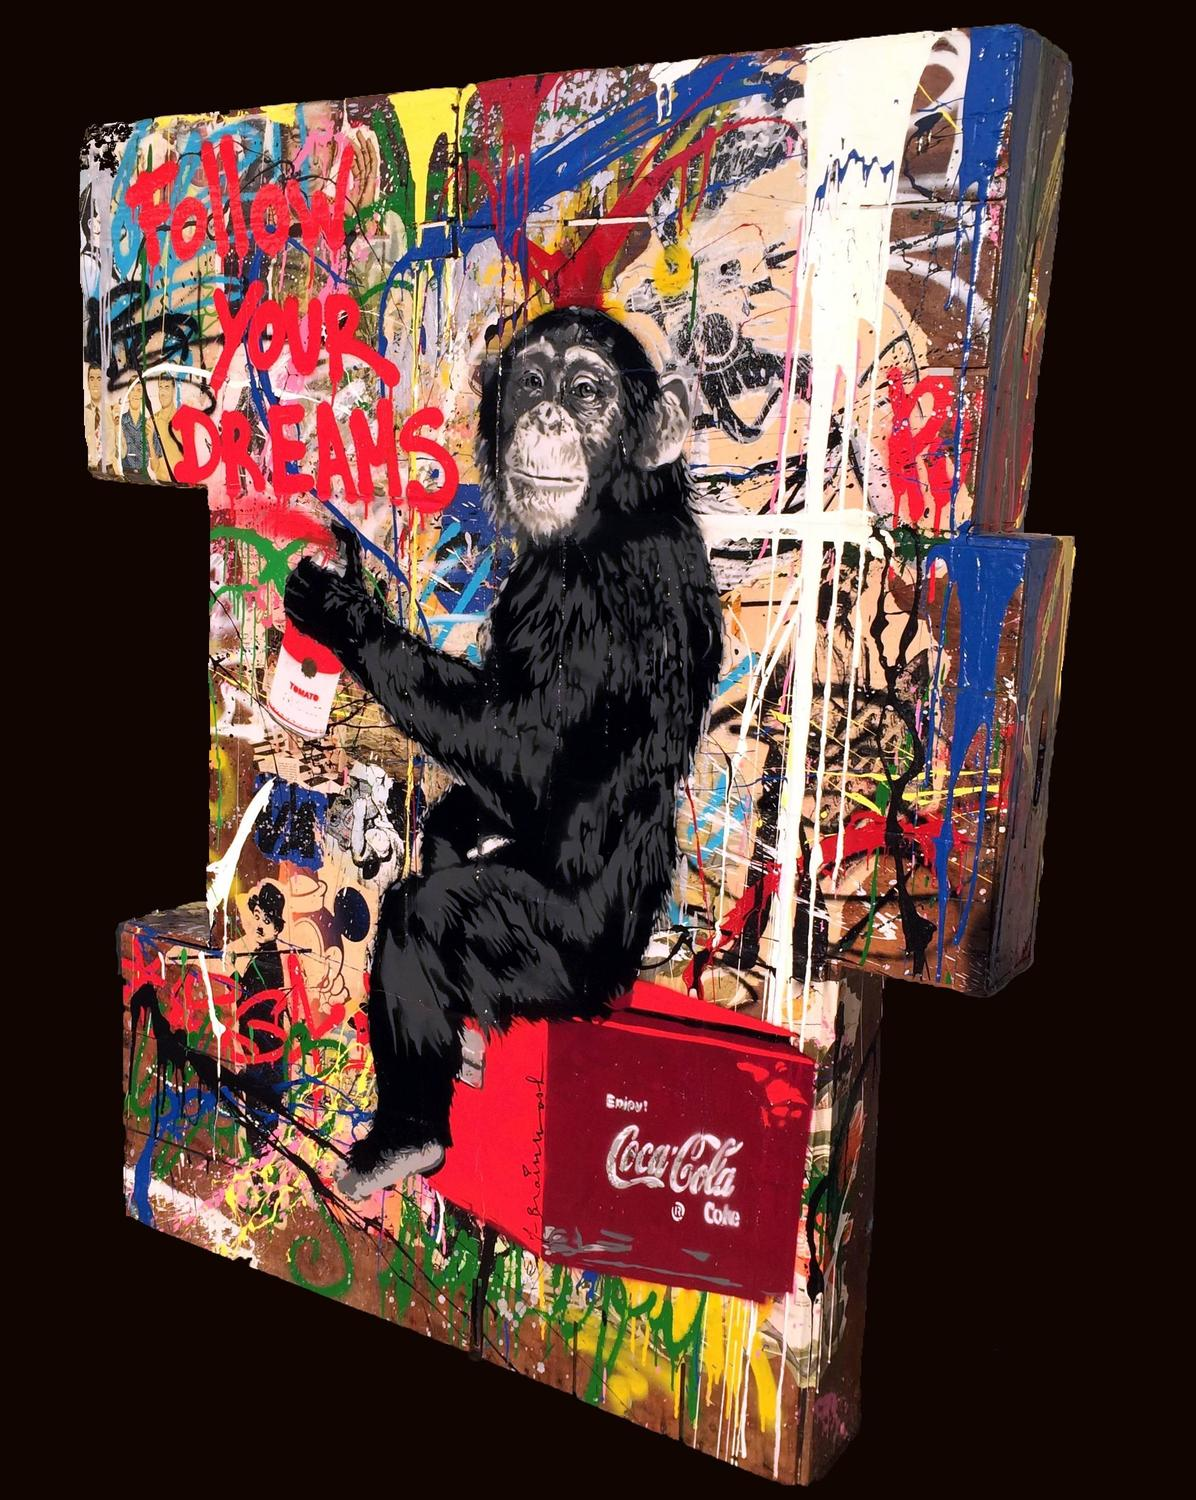 Mr brainwash everyday life on stacked crates at 1stdibs for Mural painted by street artist mr brainwash